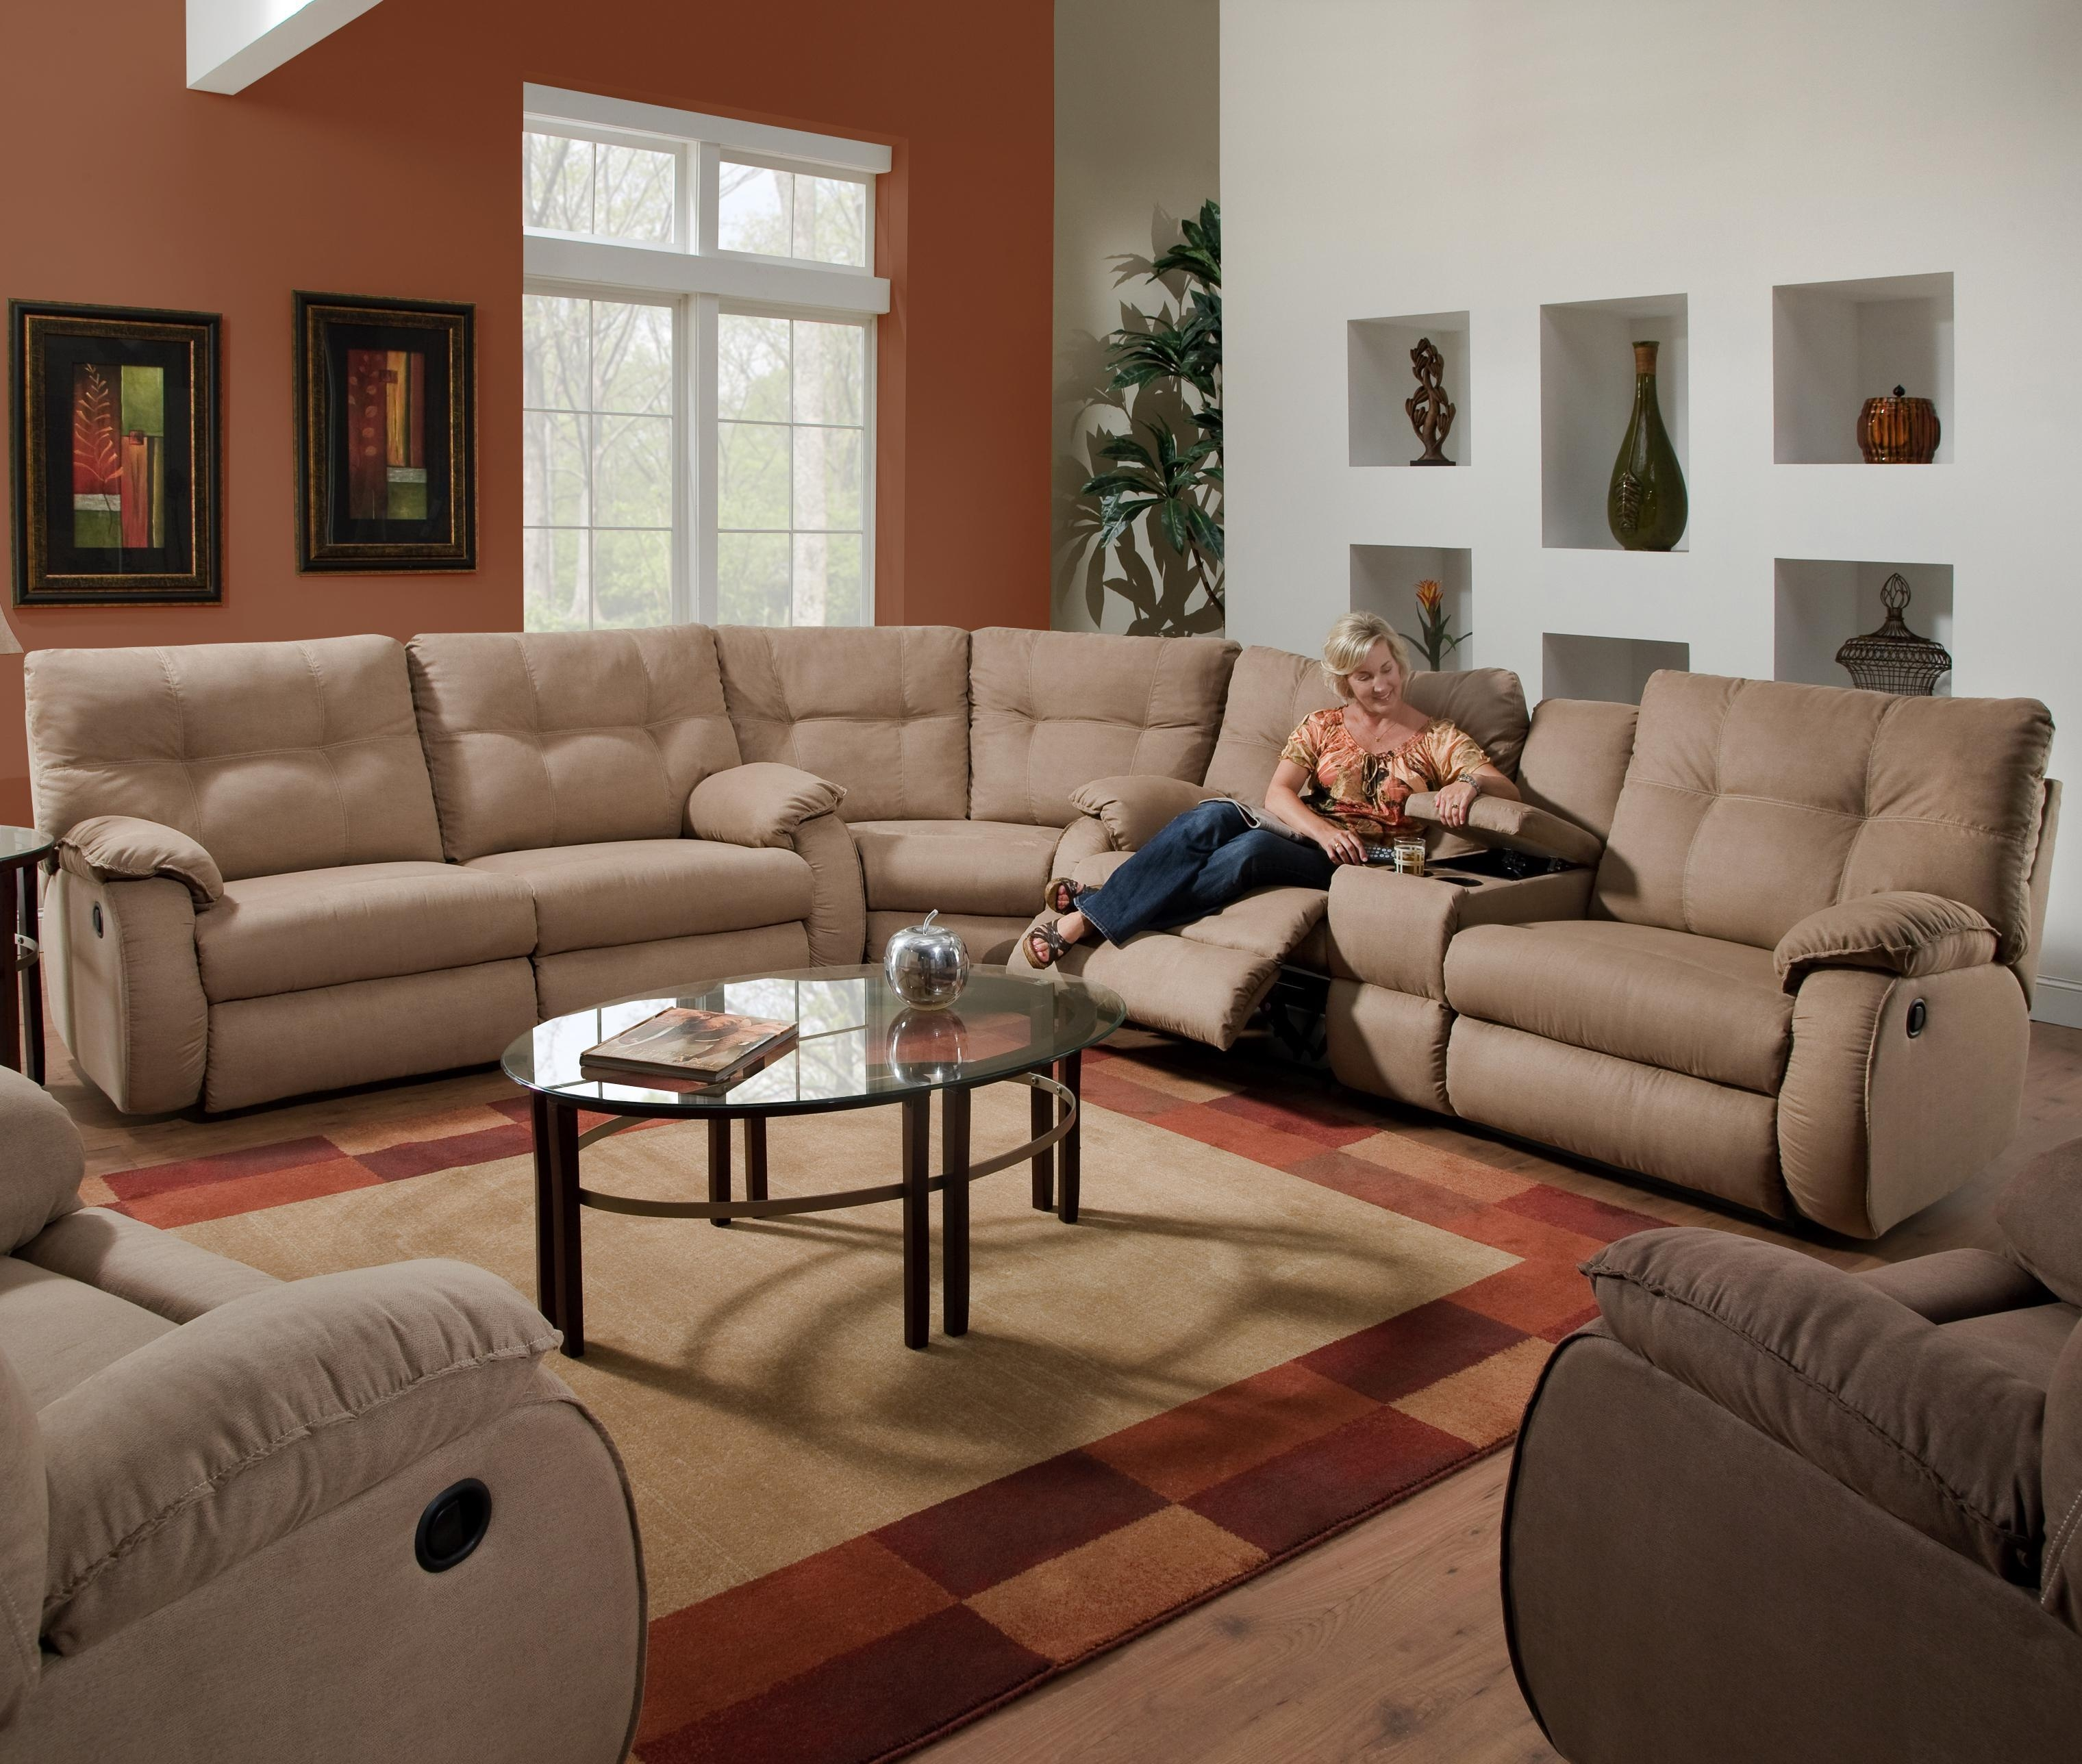 Sofas : Magnificent Fabric Reclining Sectional Sleeper Sectional Within Recliner Sectional Sofas (Image 20 of 22)